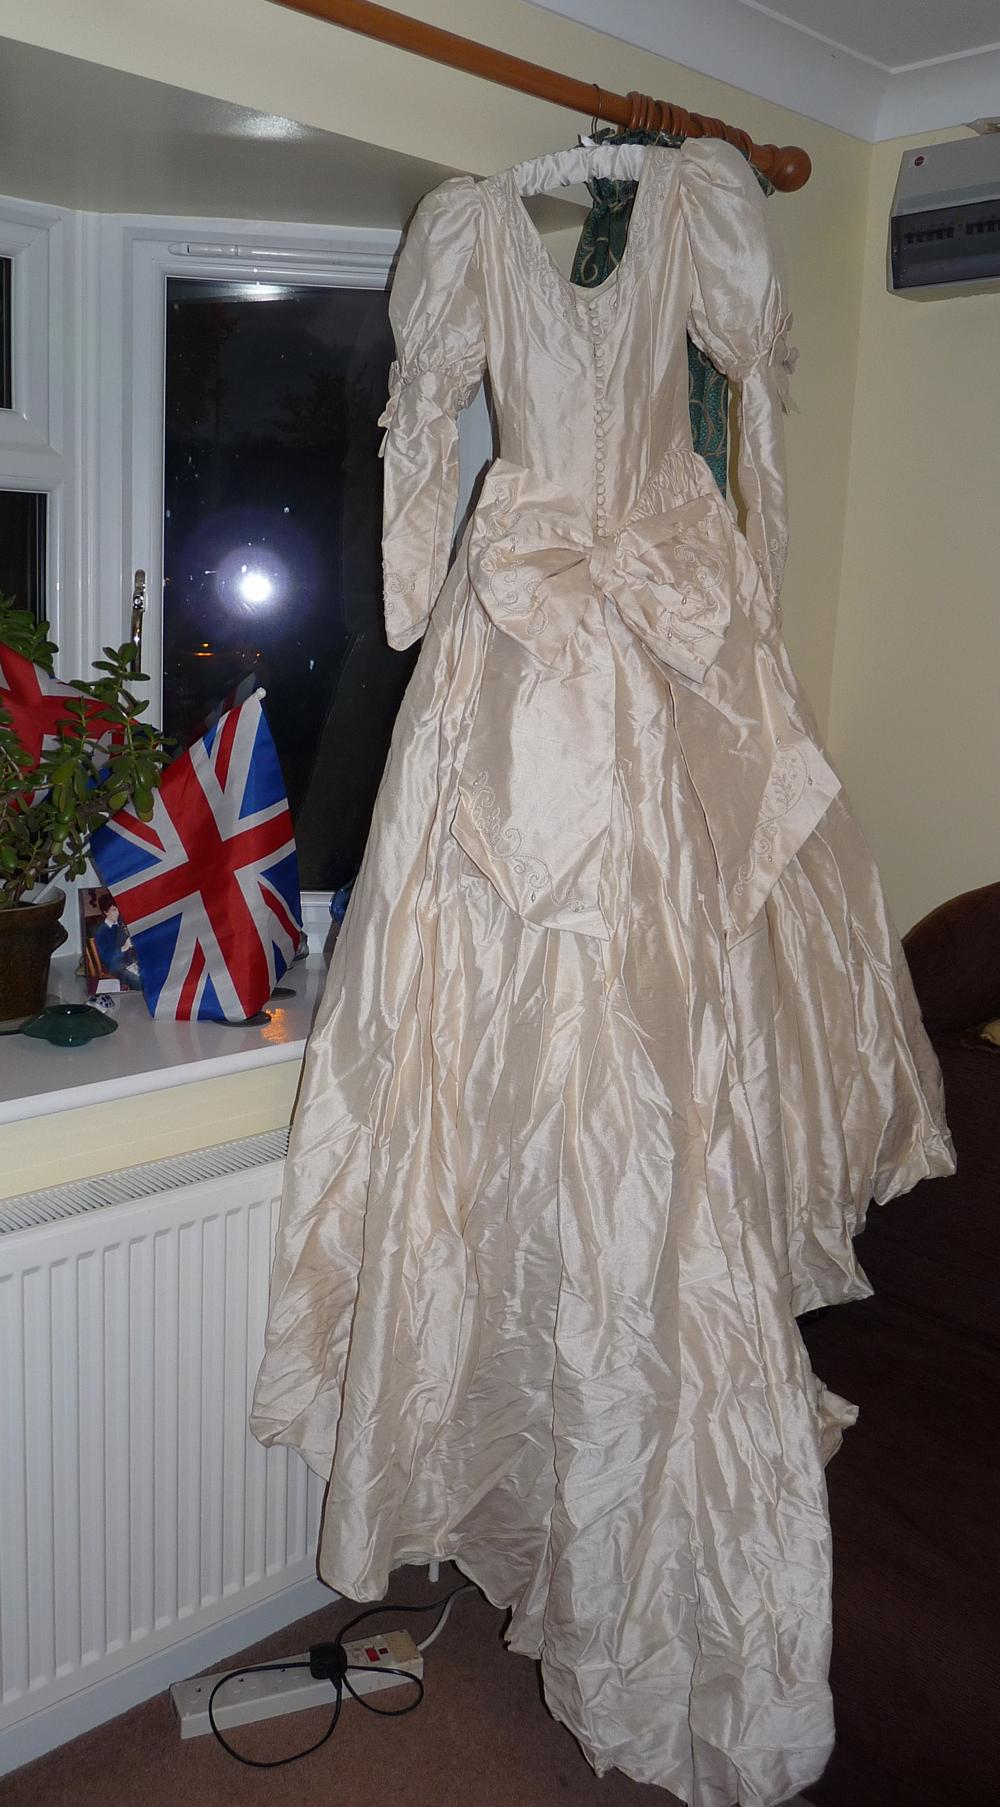 Resurrect and recycle – can a wedding dress be reborn? | Because God ...